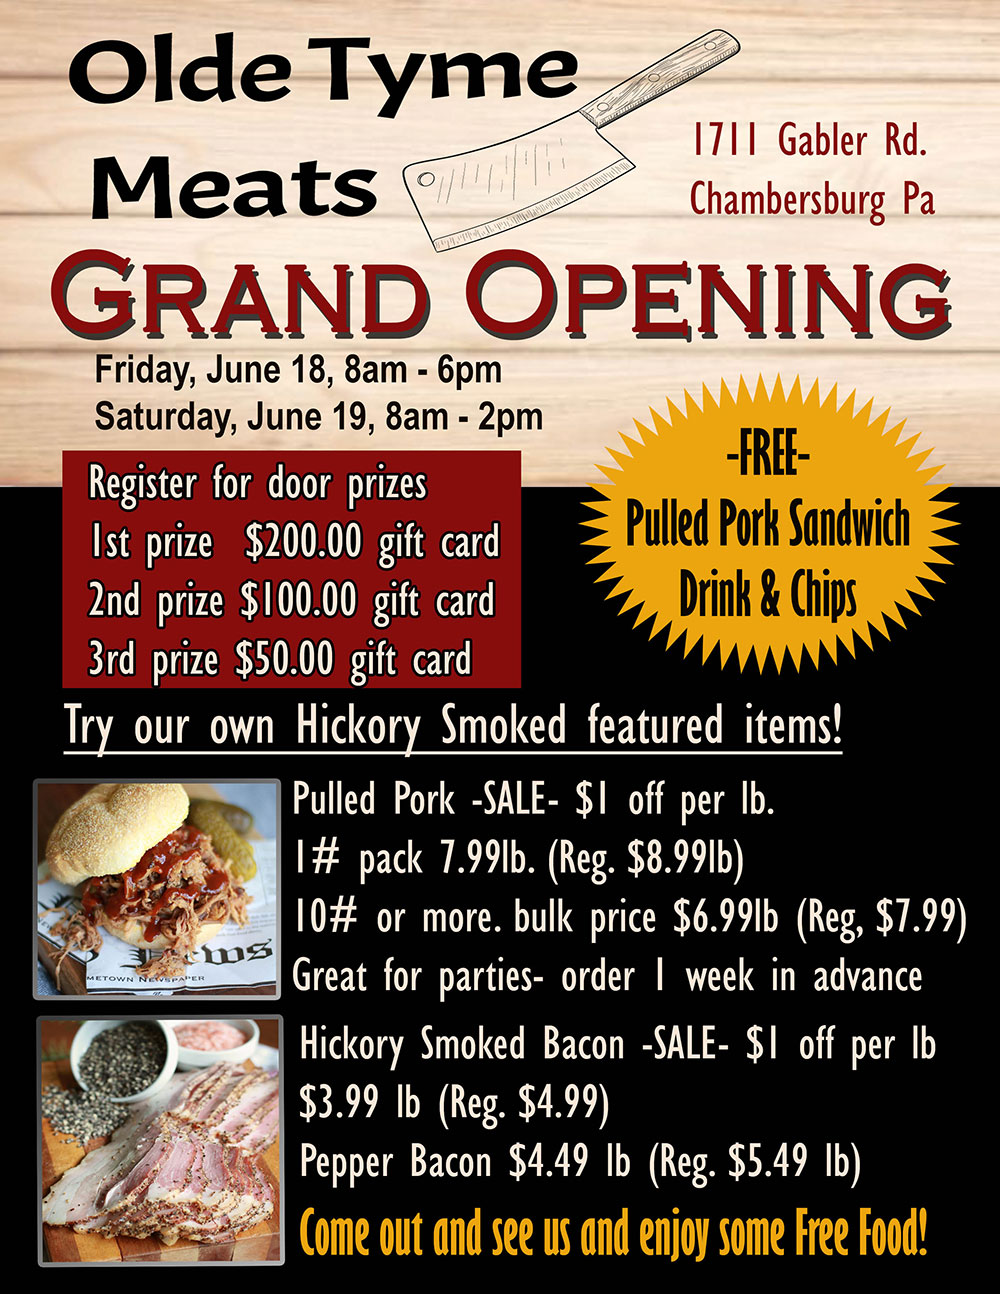 Olde Tyme Meats Grand Opening